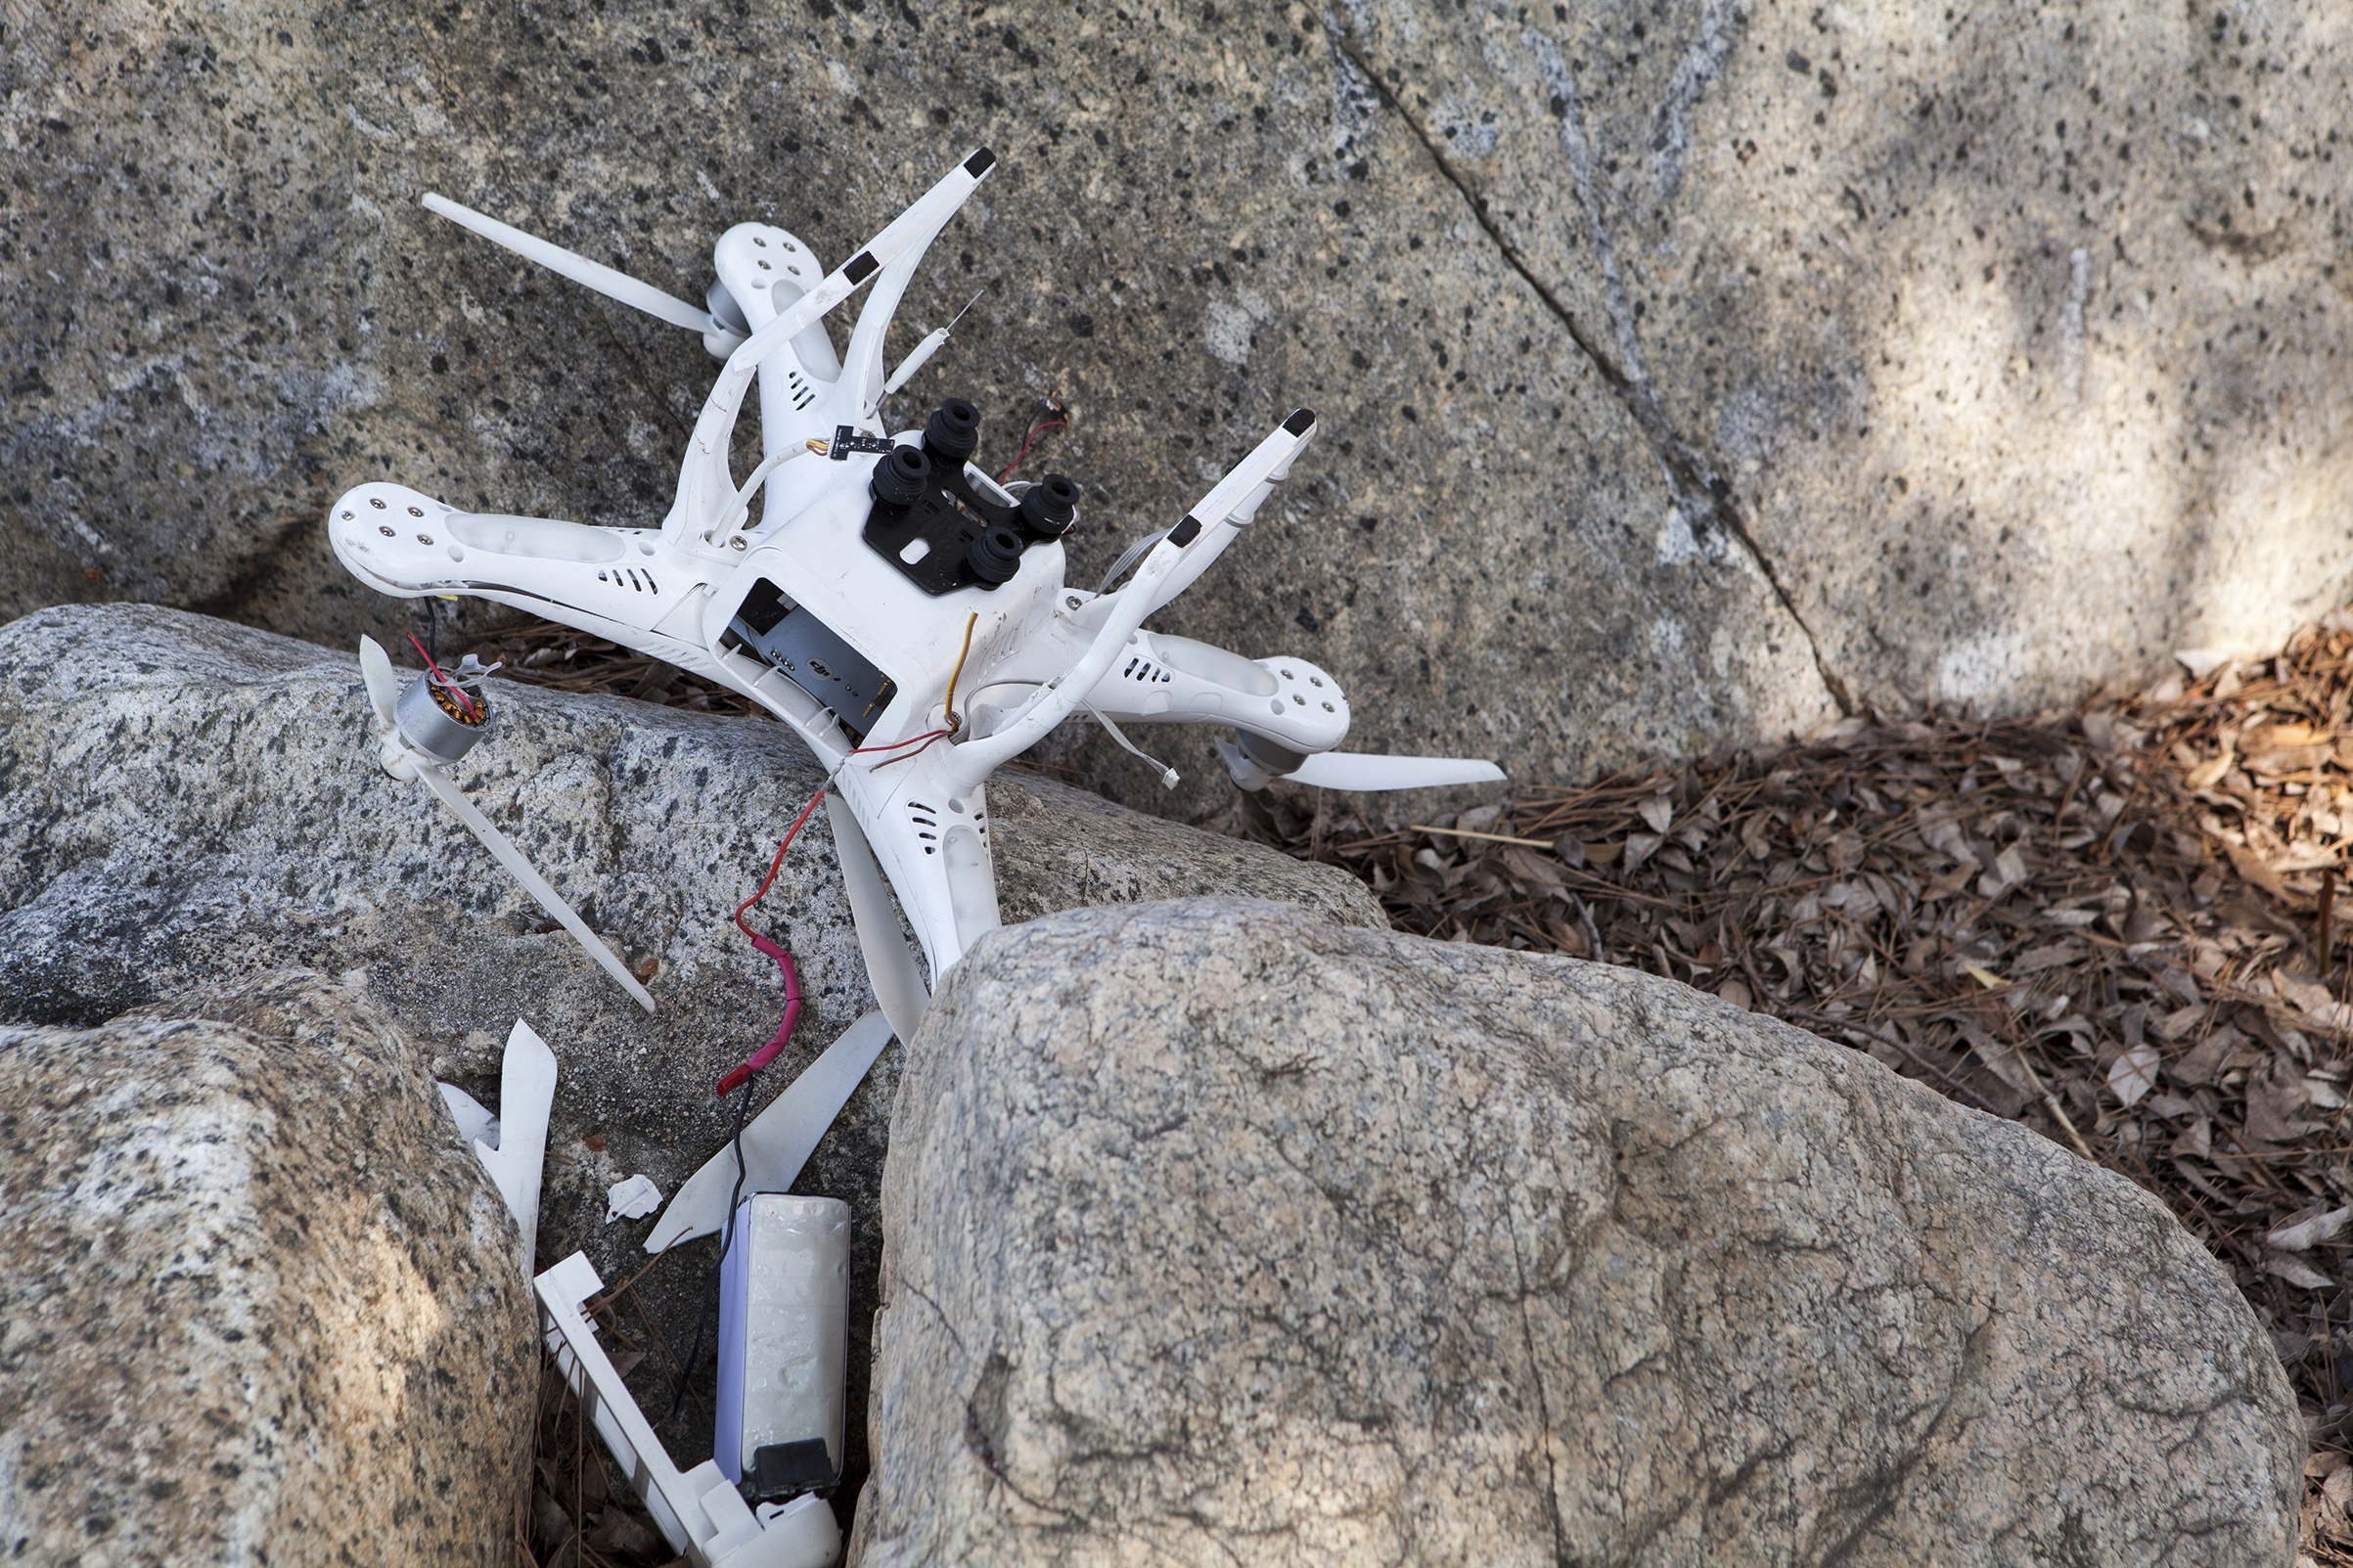 Crashed drone is broken and wedged among rocks with pieces scattered nearby in Altadena, California on August 21, 2016